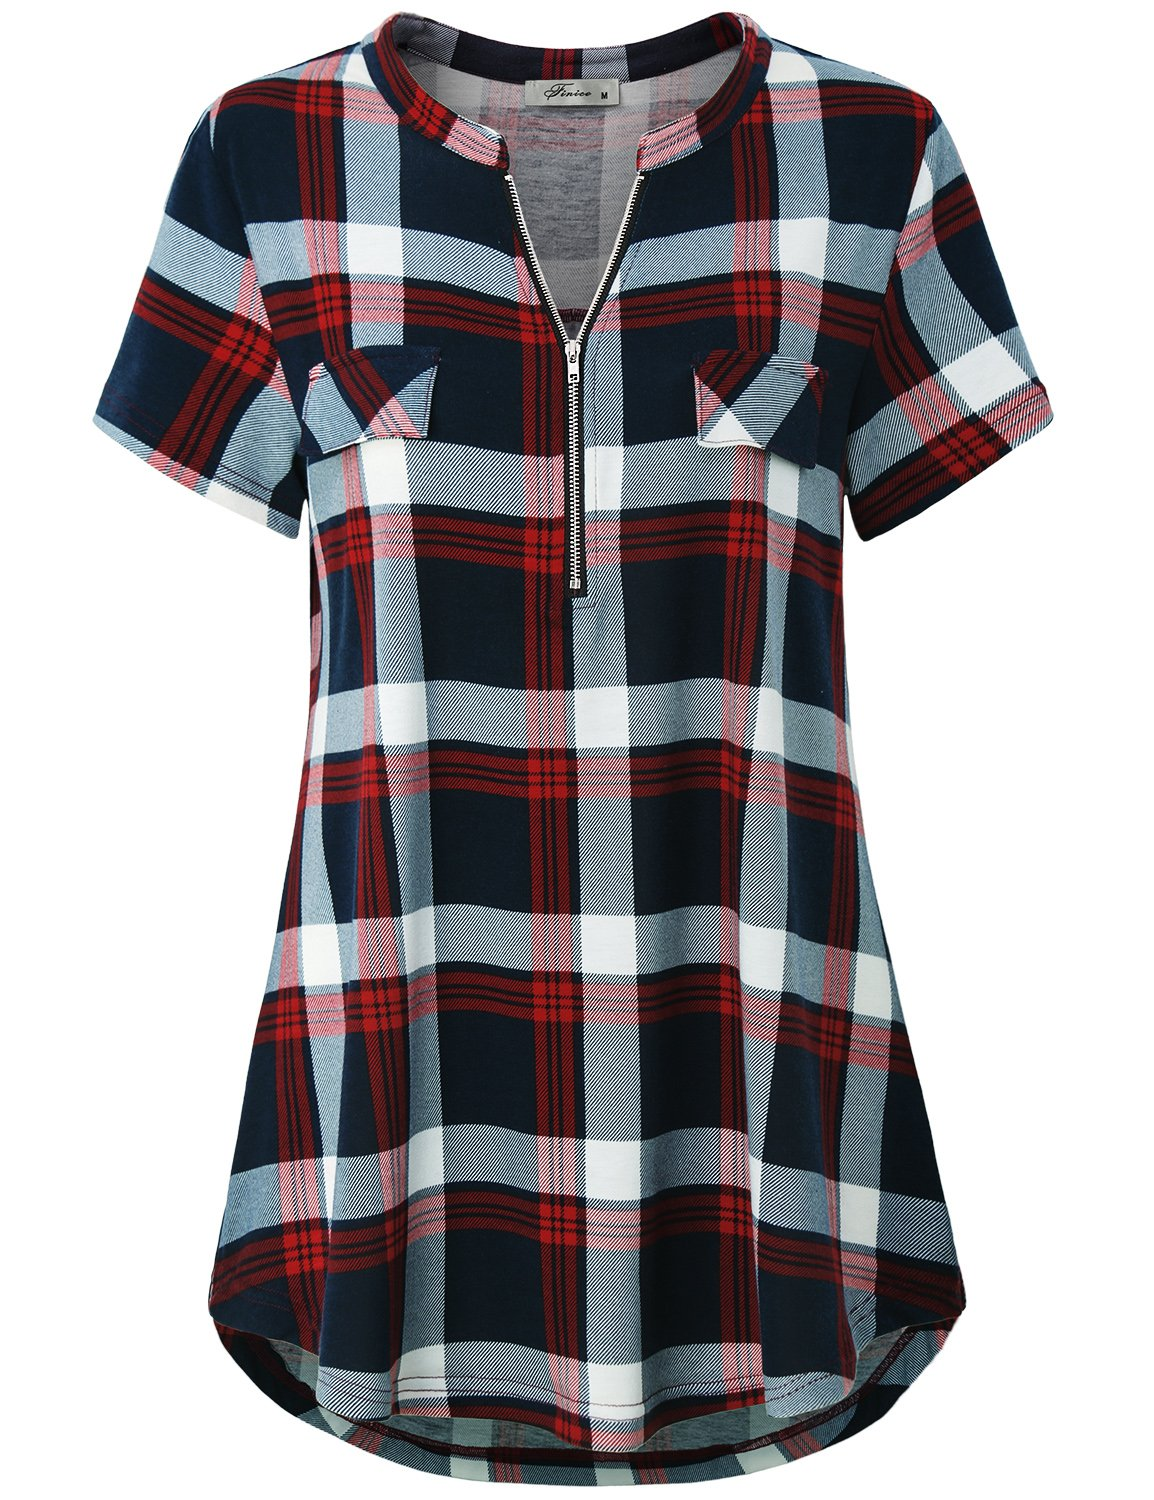 Finice Tunic Tops, Women's Tops Band Collar Cute Zip V Neck Spring Blouse Classy Stylish Short Sleeve Checkered Grid Multi-Color Printed Henley Shirt Soft Surroundings Red XXXL